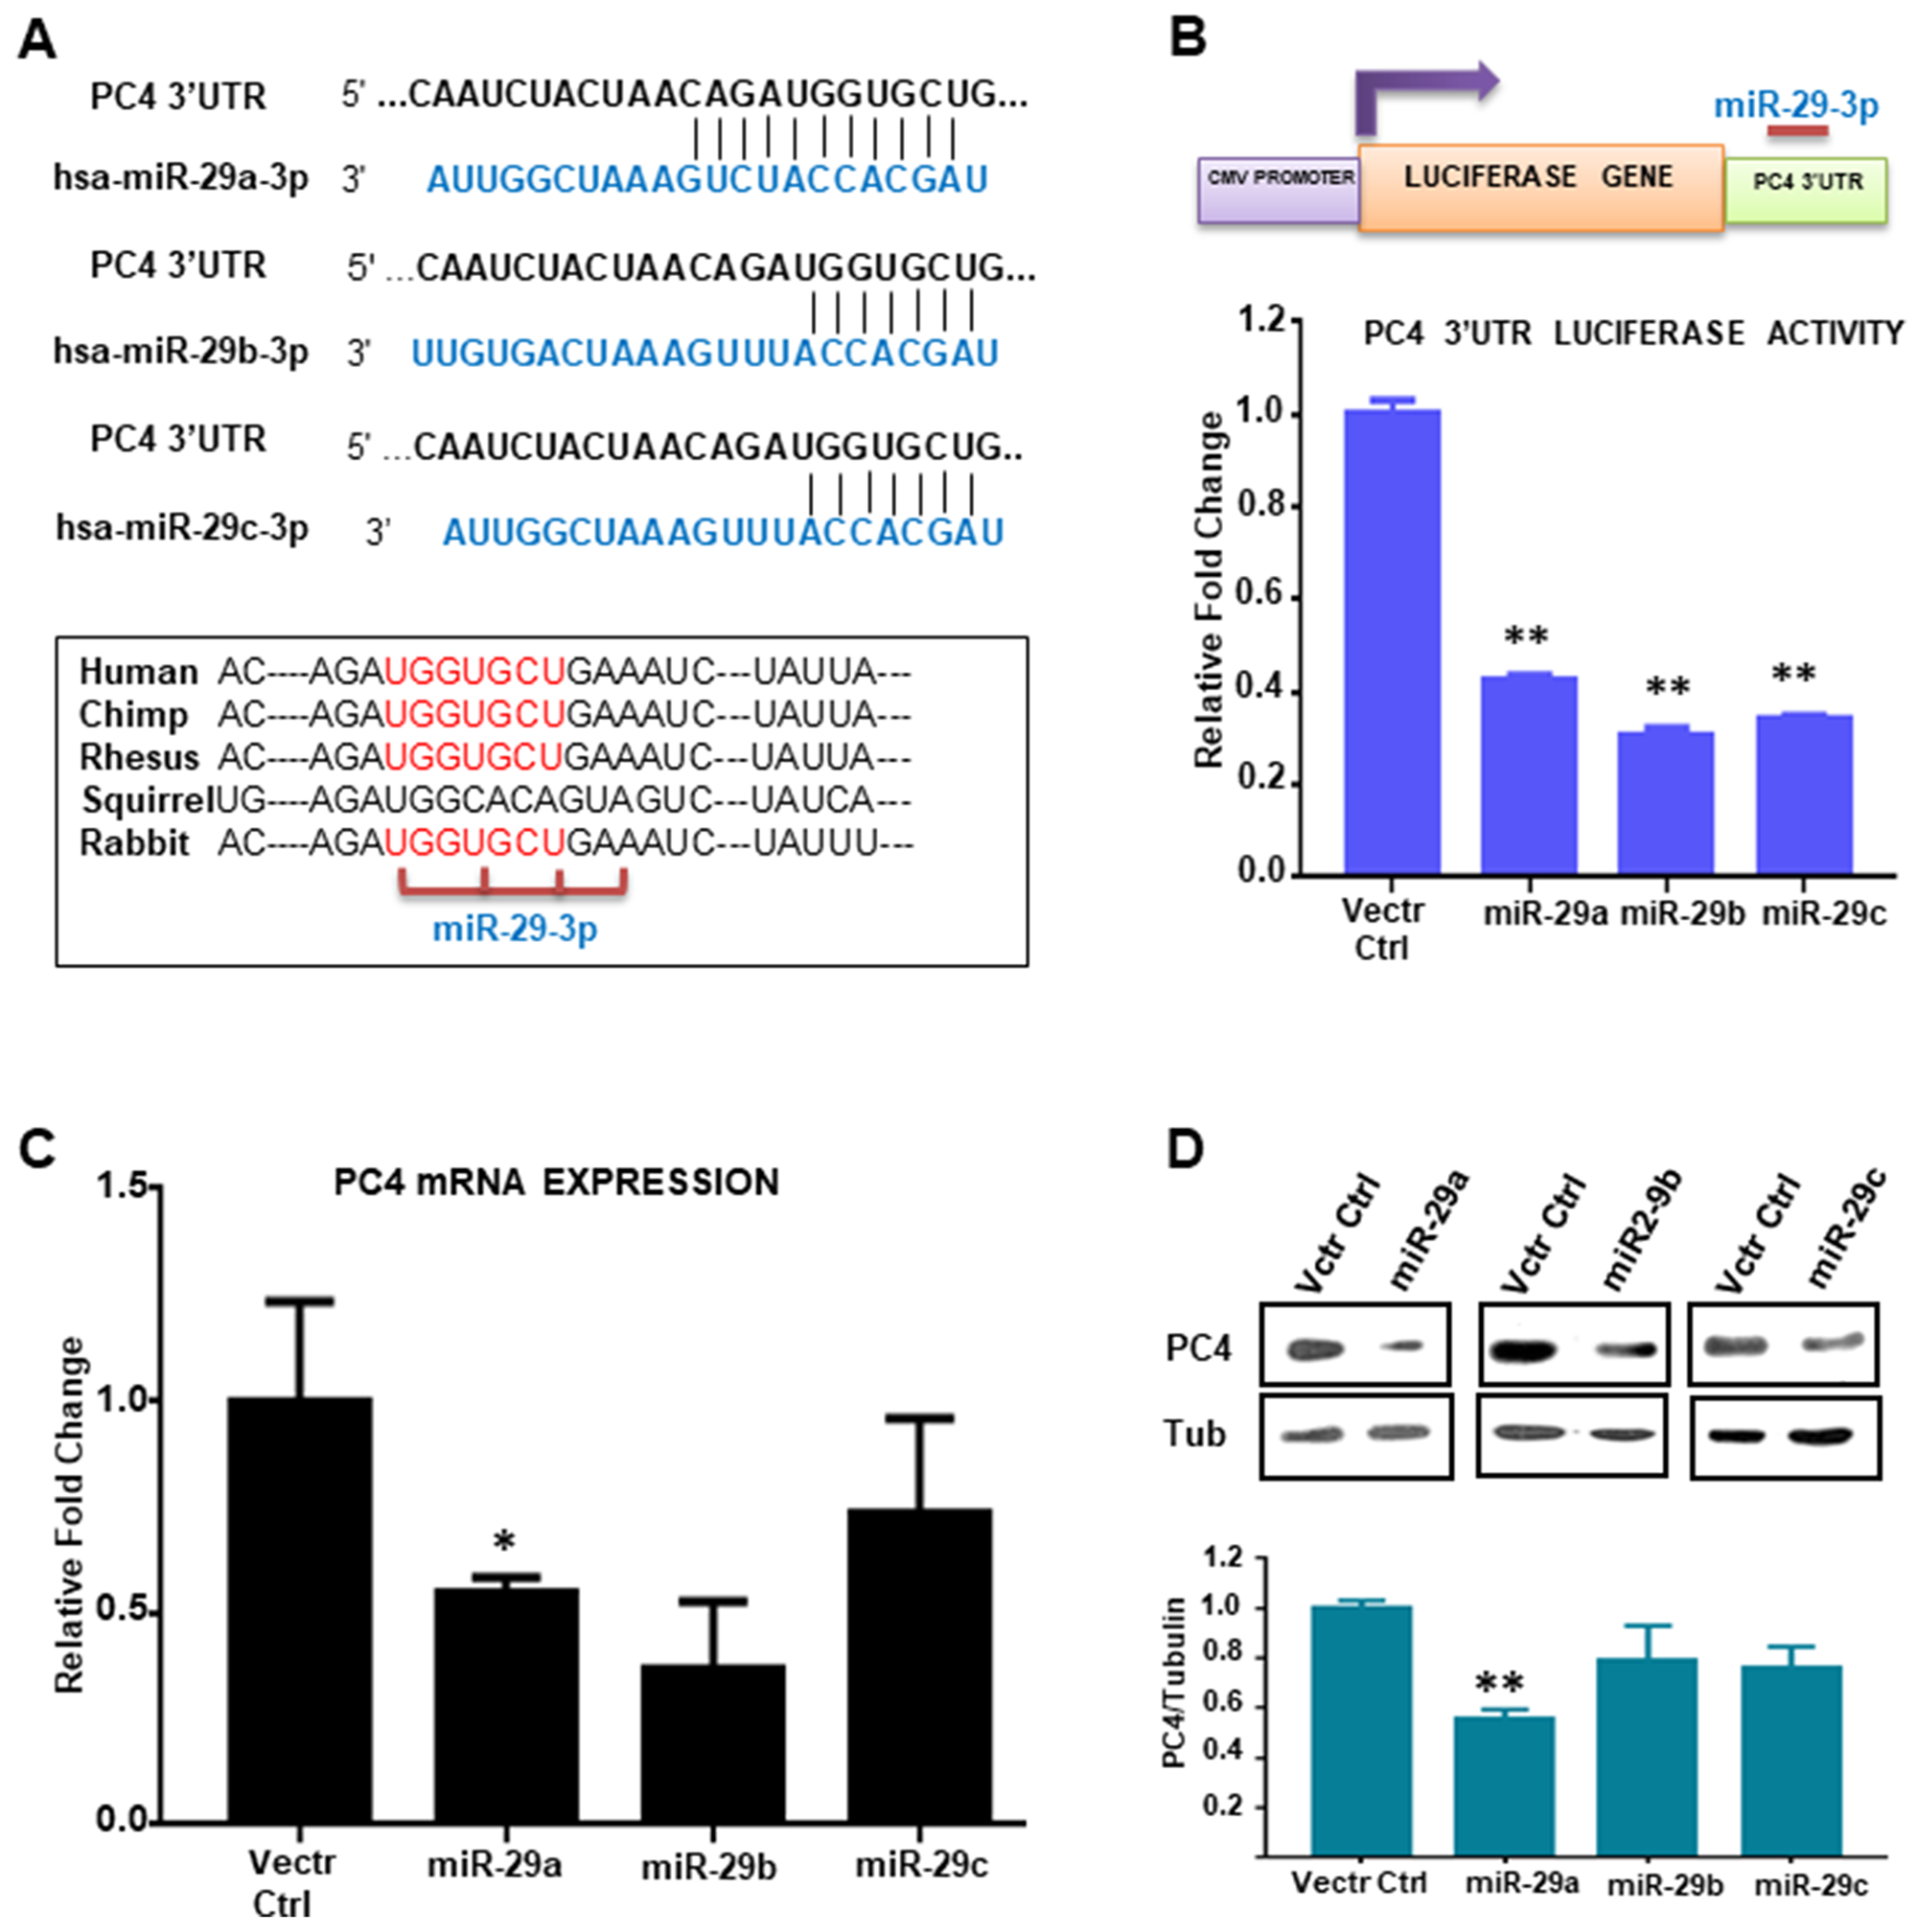 miR-29 targets and downregulates PC4 expression.